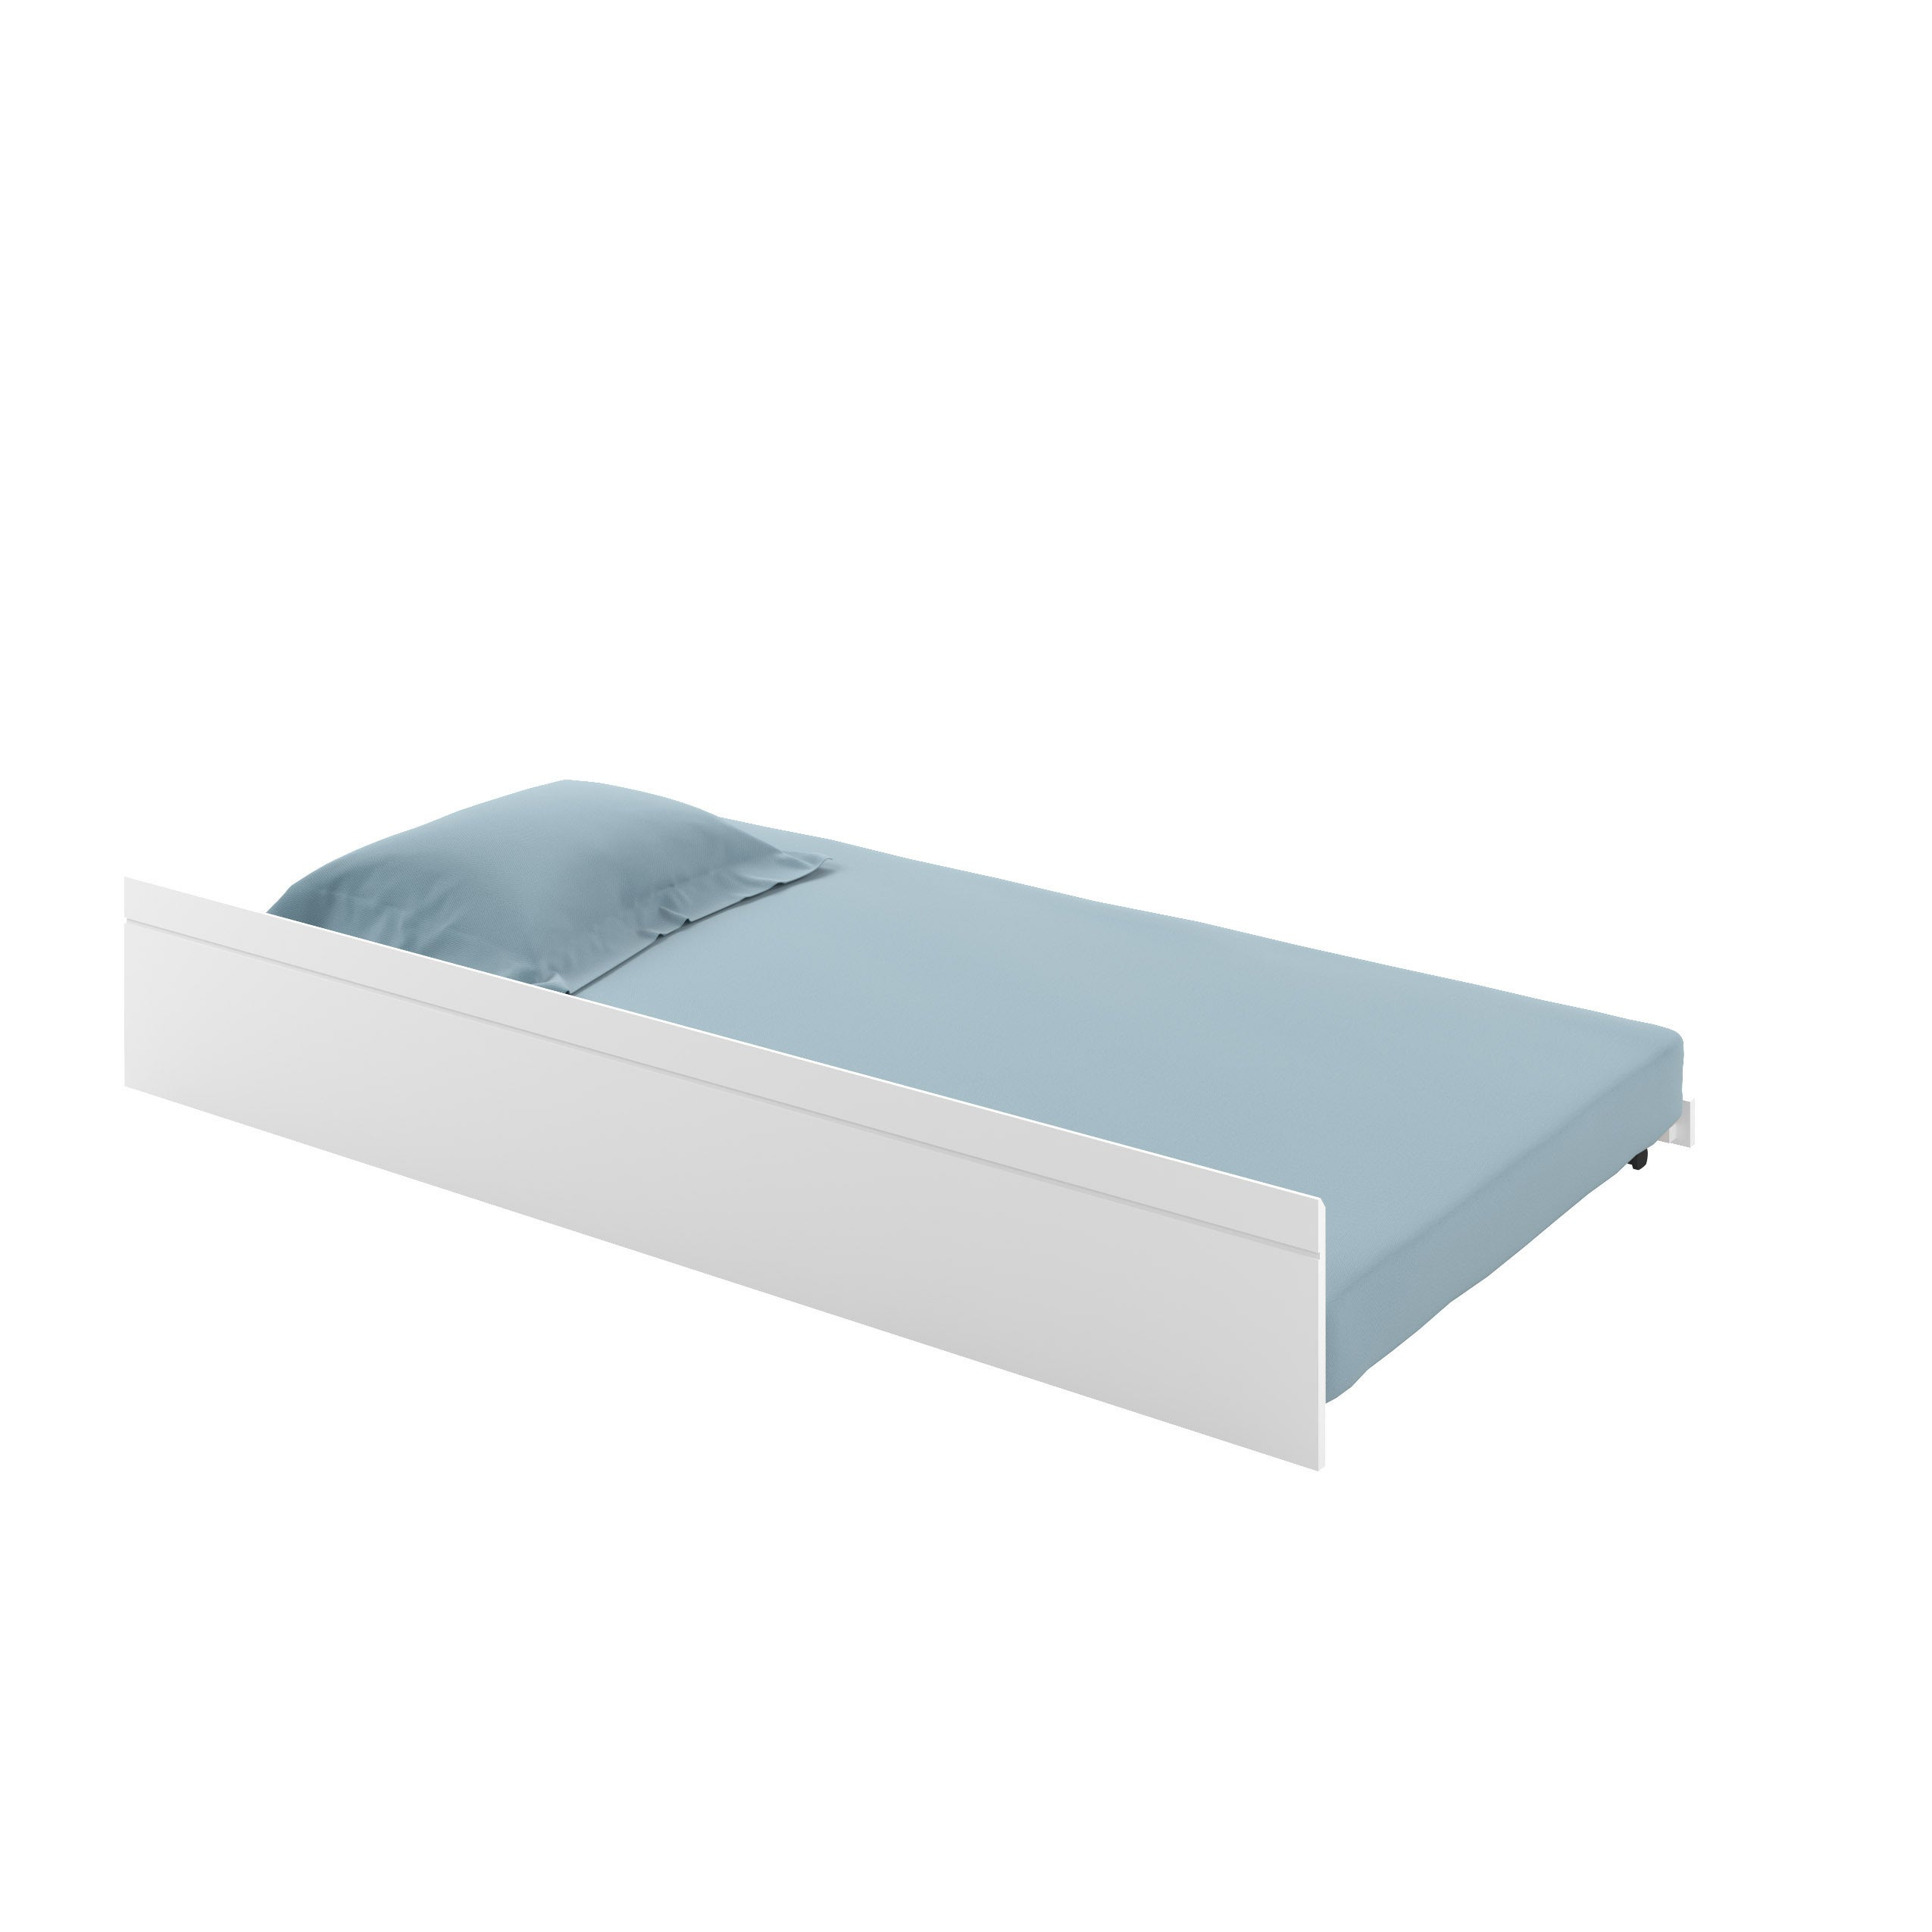 CorLiving Ashland Trundle Bed (White - Painted/White Fini...